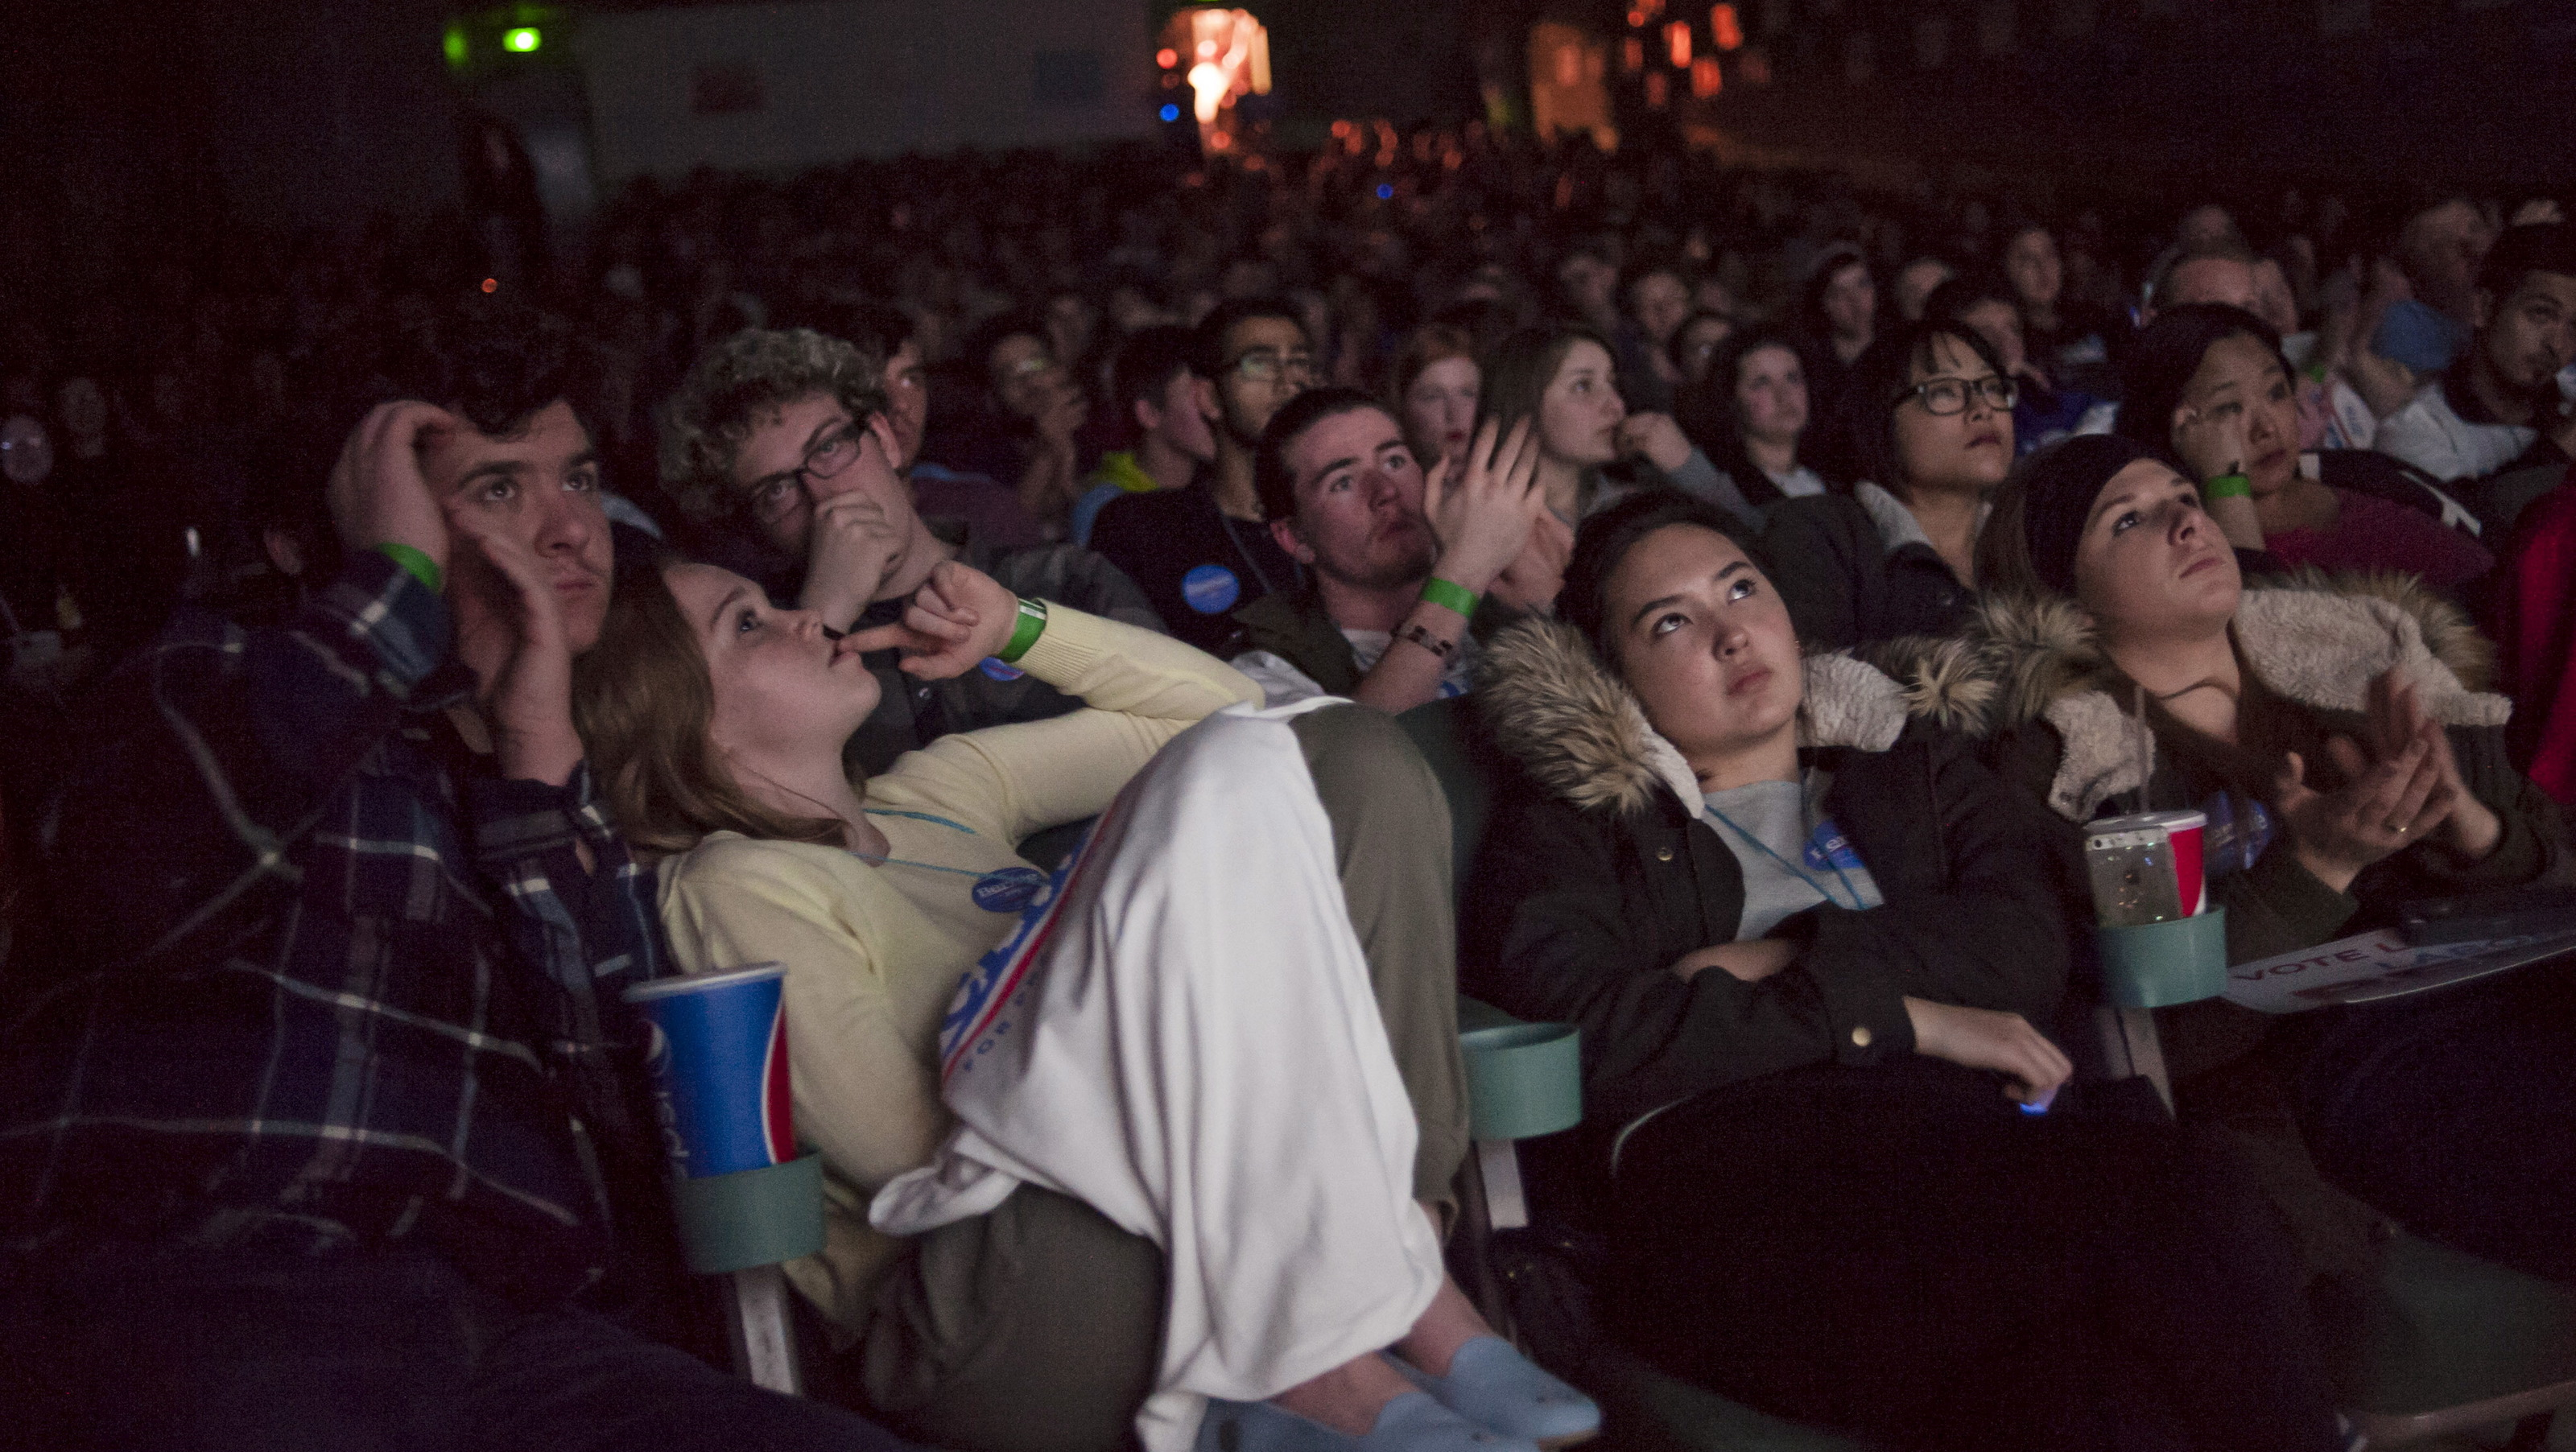 Andy Meyer (L), Maggie Timboe, Sasha Fetty and Mia Tiric watch the U.S. Democratic presidential candidates debate on a movie screen at a party event at a movie theatre in support of Democratic U.S. presidential candidate Bernie Sanders in Des Moines, Iowa November 14, 2015. REUTERS/Mark Kauzlarich - RTS740K